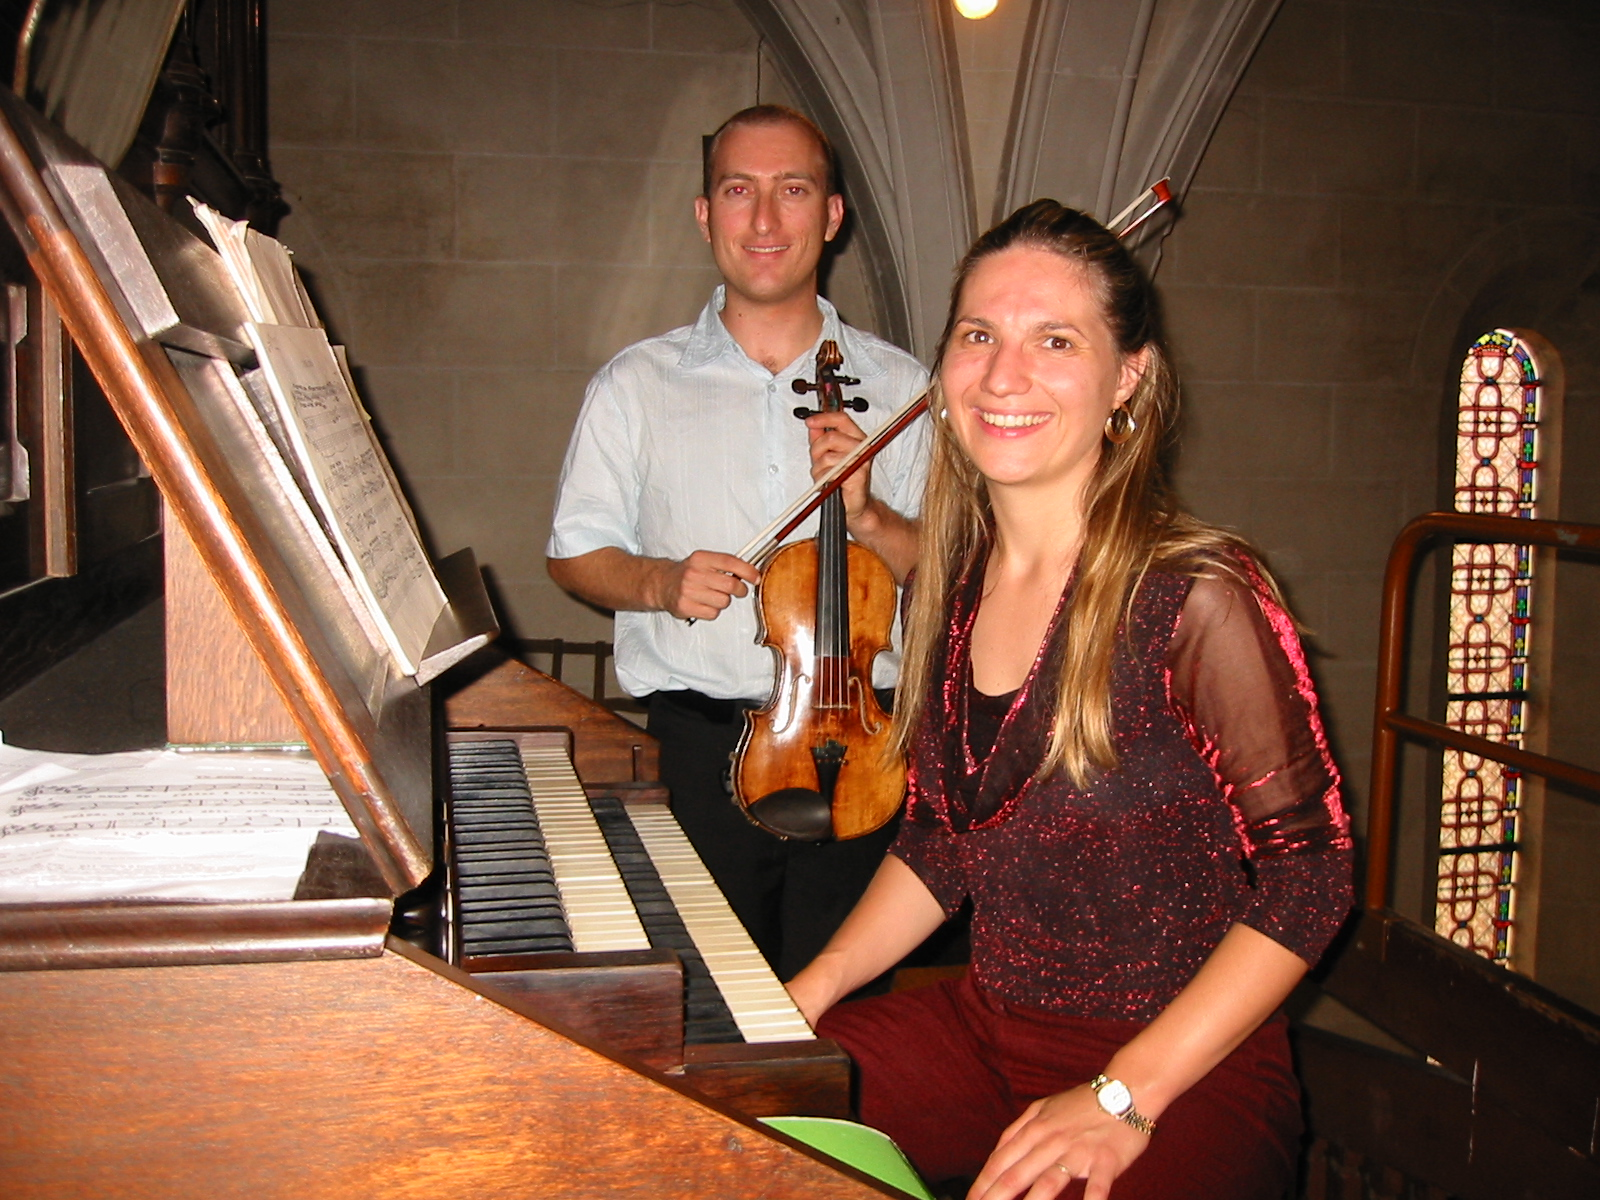 Photo orgue et violon piccinini blanchon 3